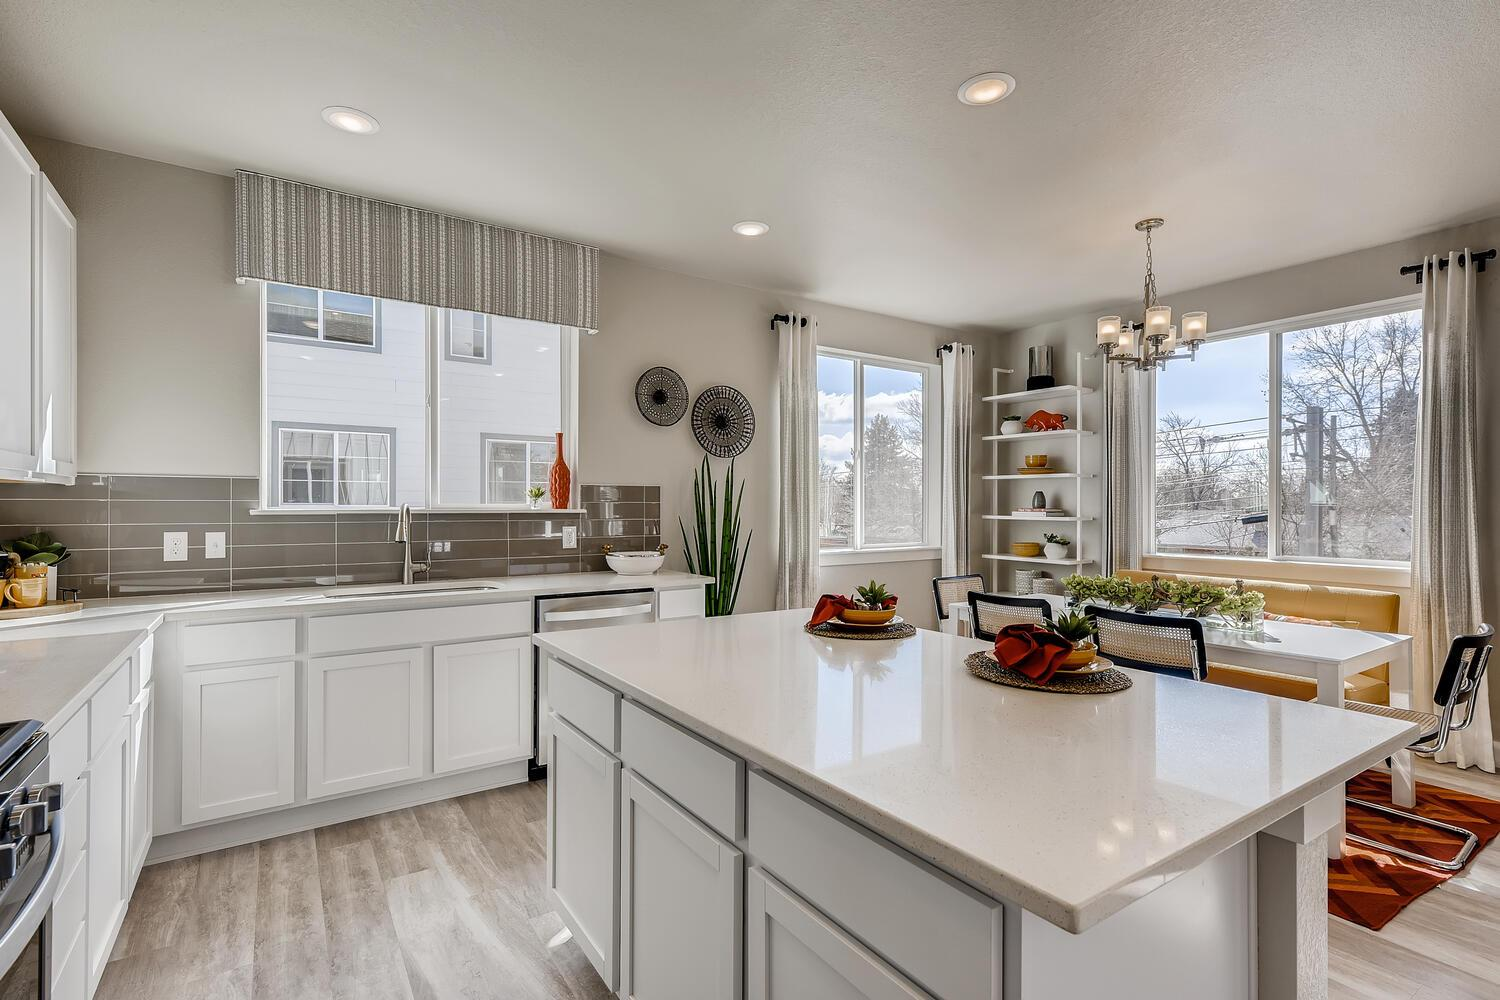 Kitchen featured in the Residence 22340 By Century Communities in Denver, CO